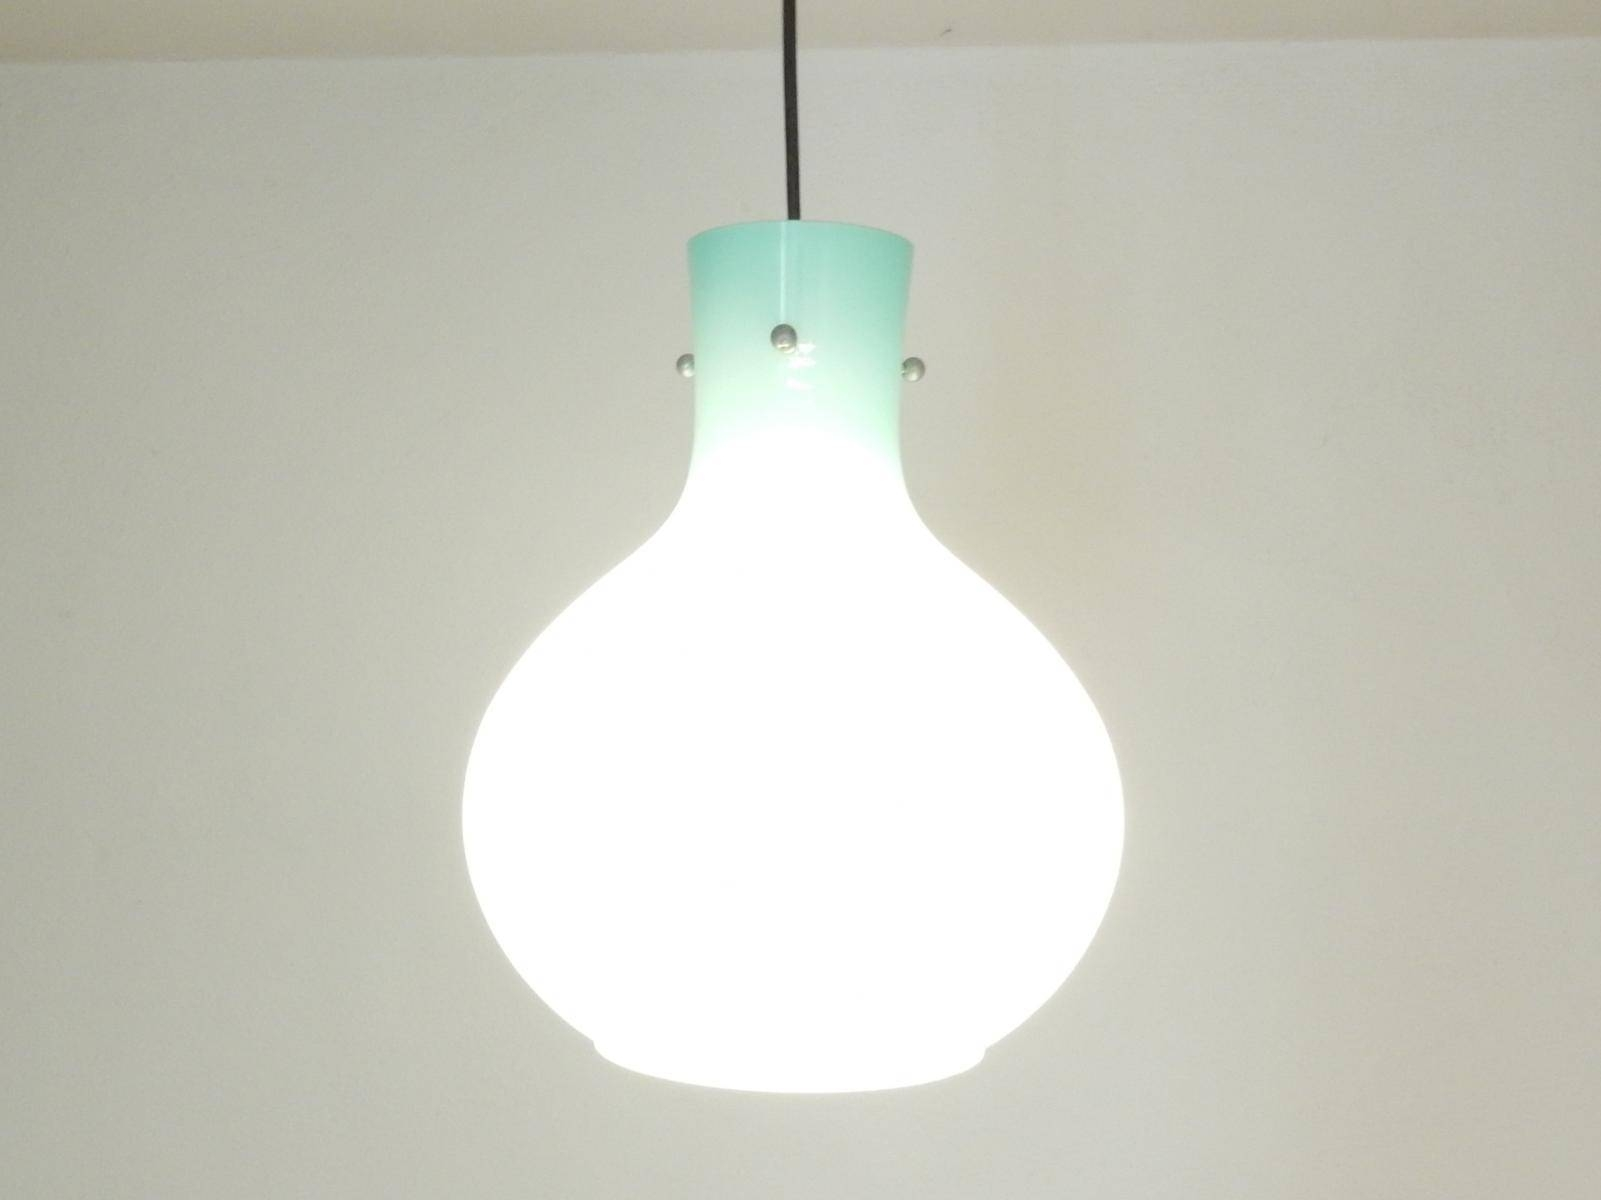 Vintage Italian Blue Glass Pendant Light For Sale At Pamono Throughout Blue Glass Pendant Lighting (View 13 of 15)